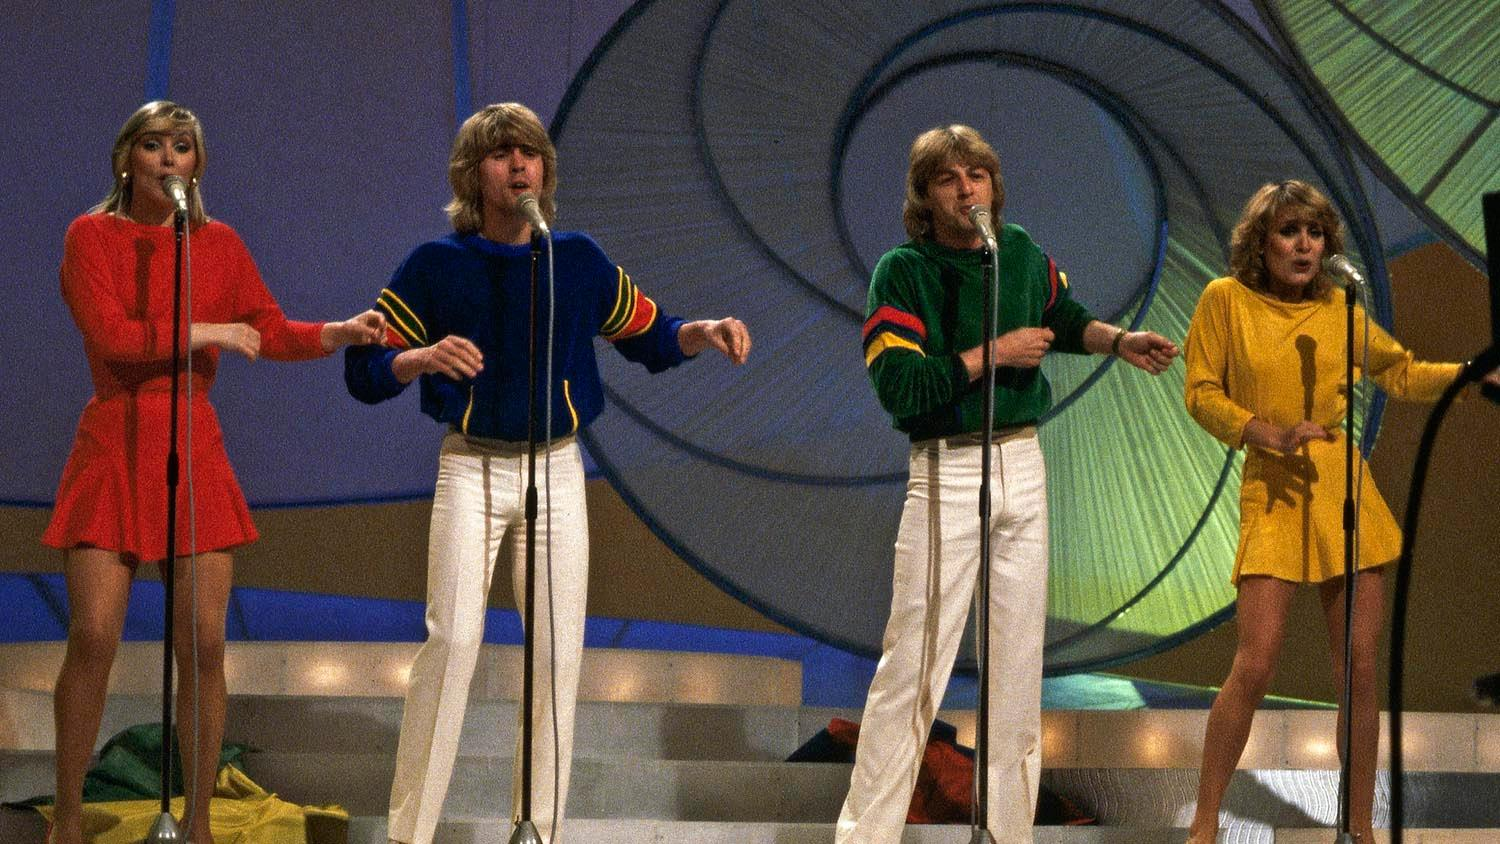 Bucks Fizz are reuniting for a virtual Eurovision performance